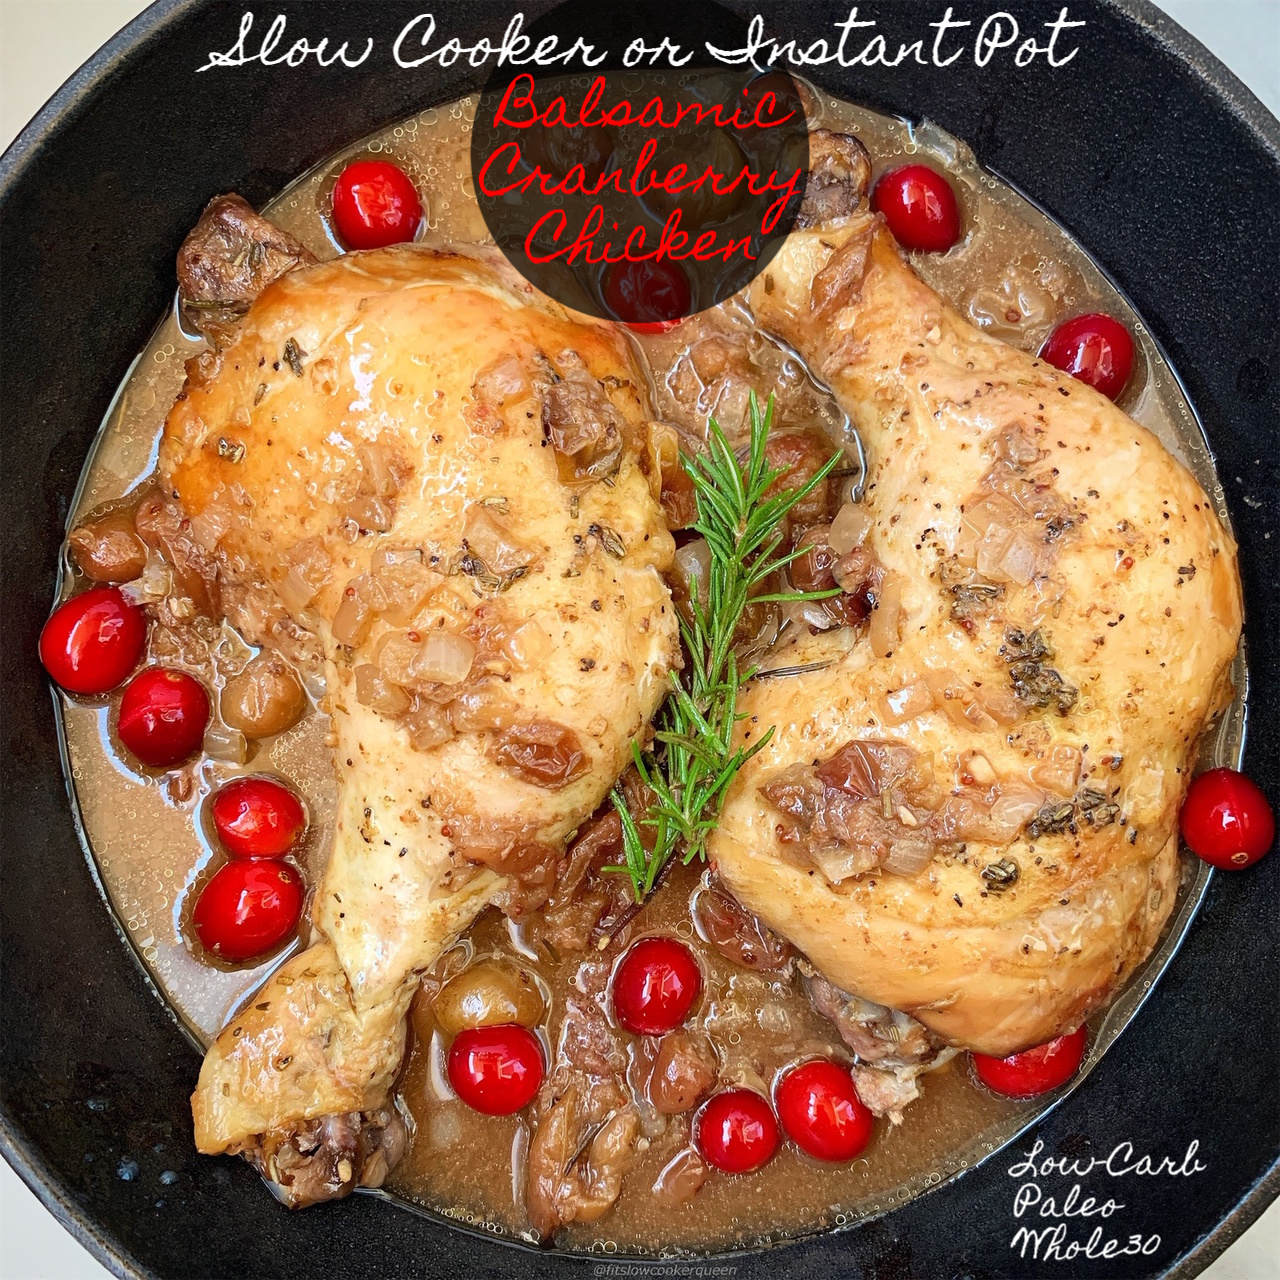 A homemade balsamic cranberry sauce cooks on top of your favorite cut of chicken in this easy and healthy recipe that can be made in your slow cooker or Instant Pot.